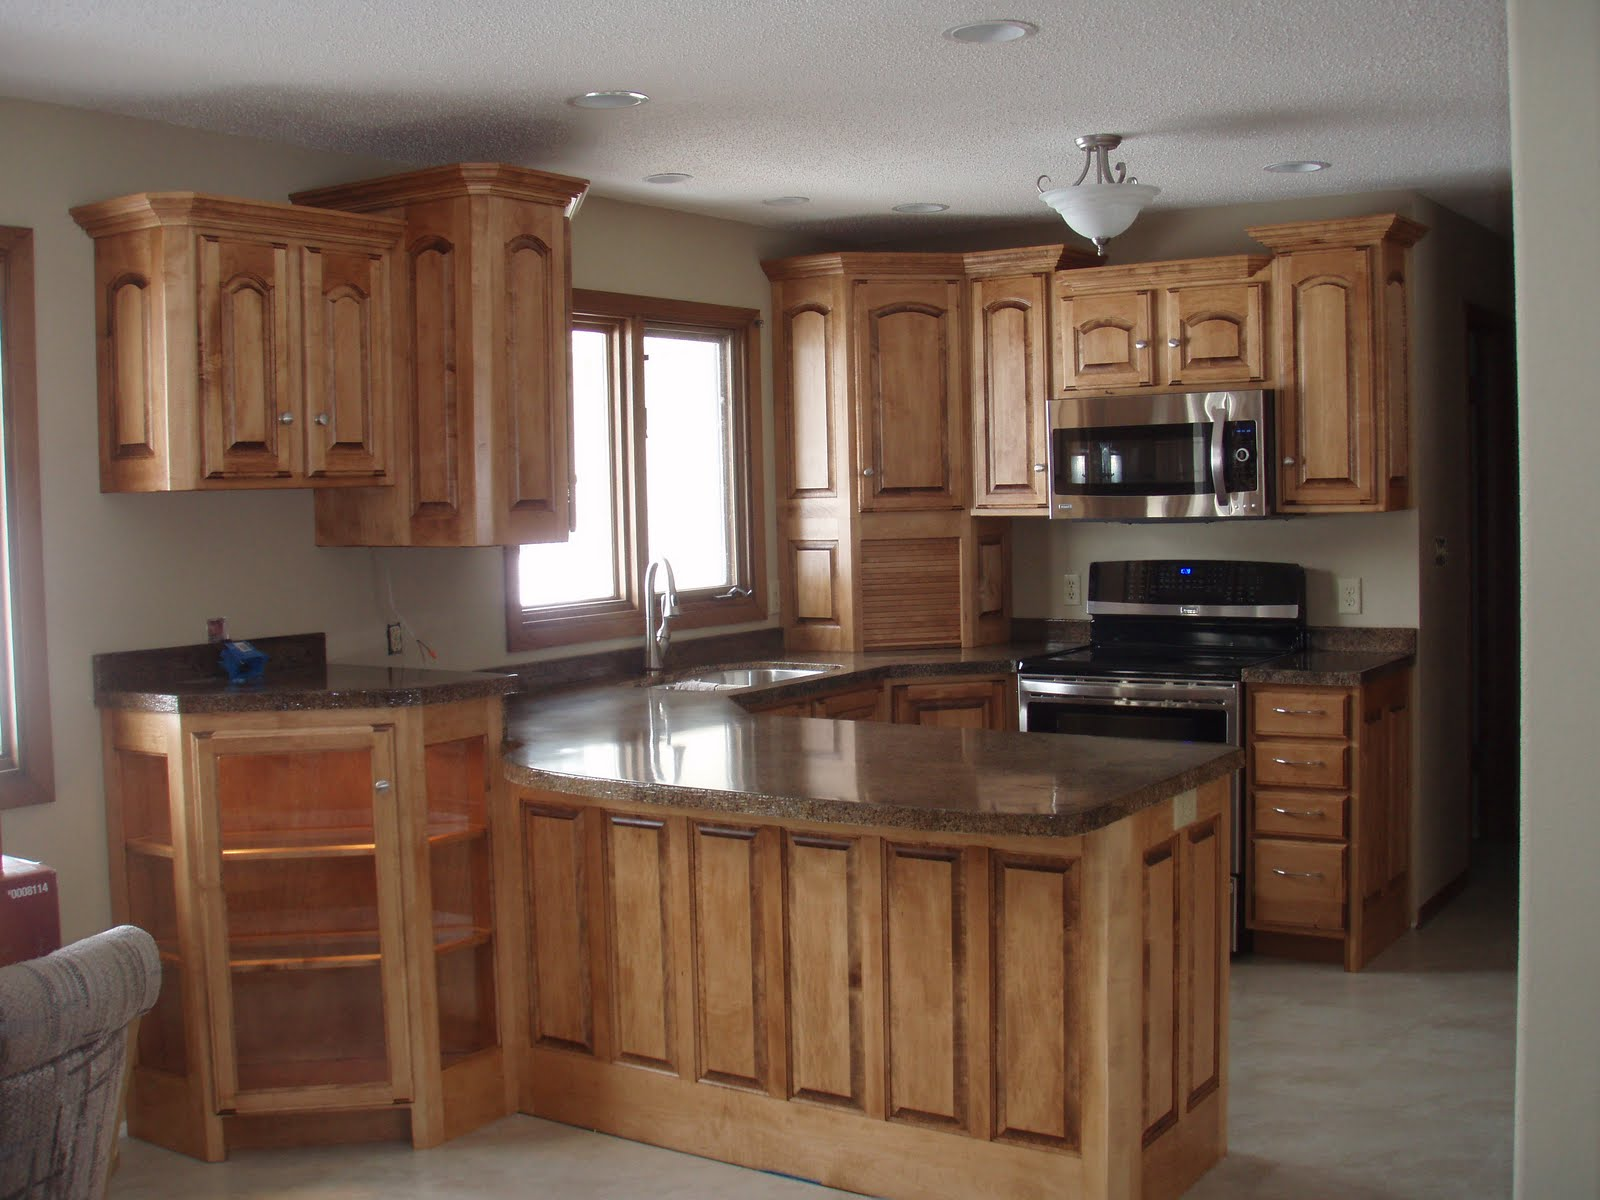 BACKER'S WOODWORKING: Maple Cabinets with Granicrete ... on Kitchen Countertops With Maple Cabinets  id=50235